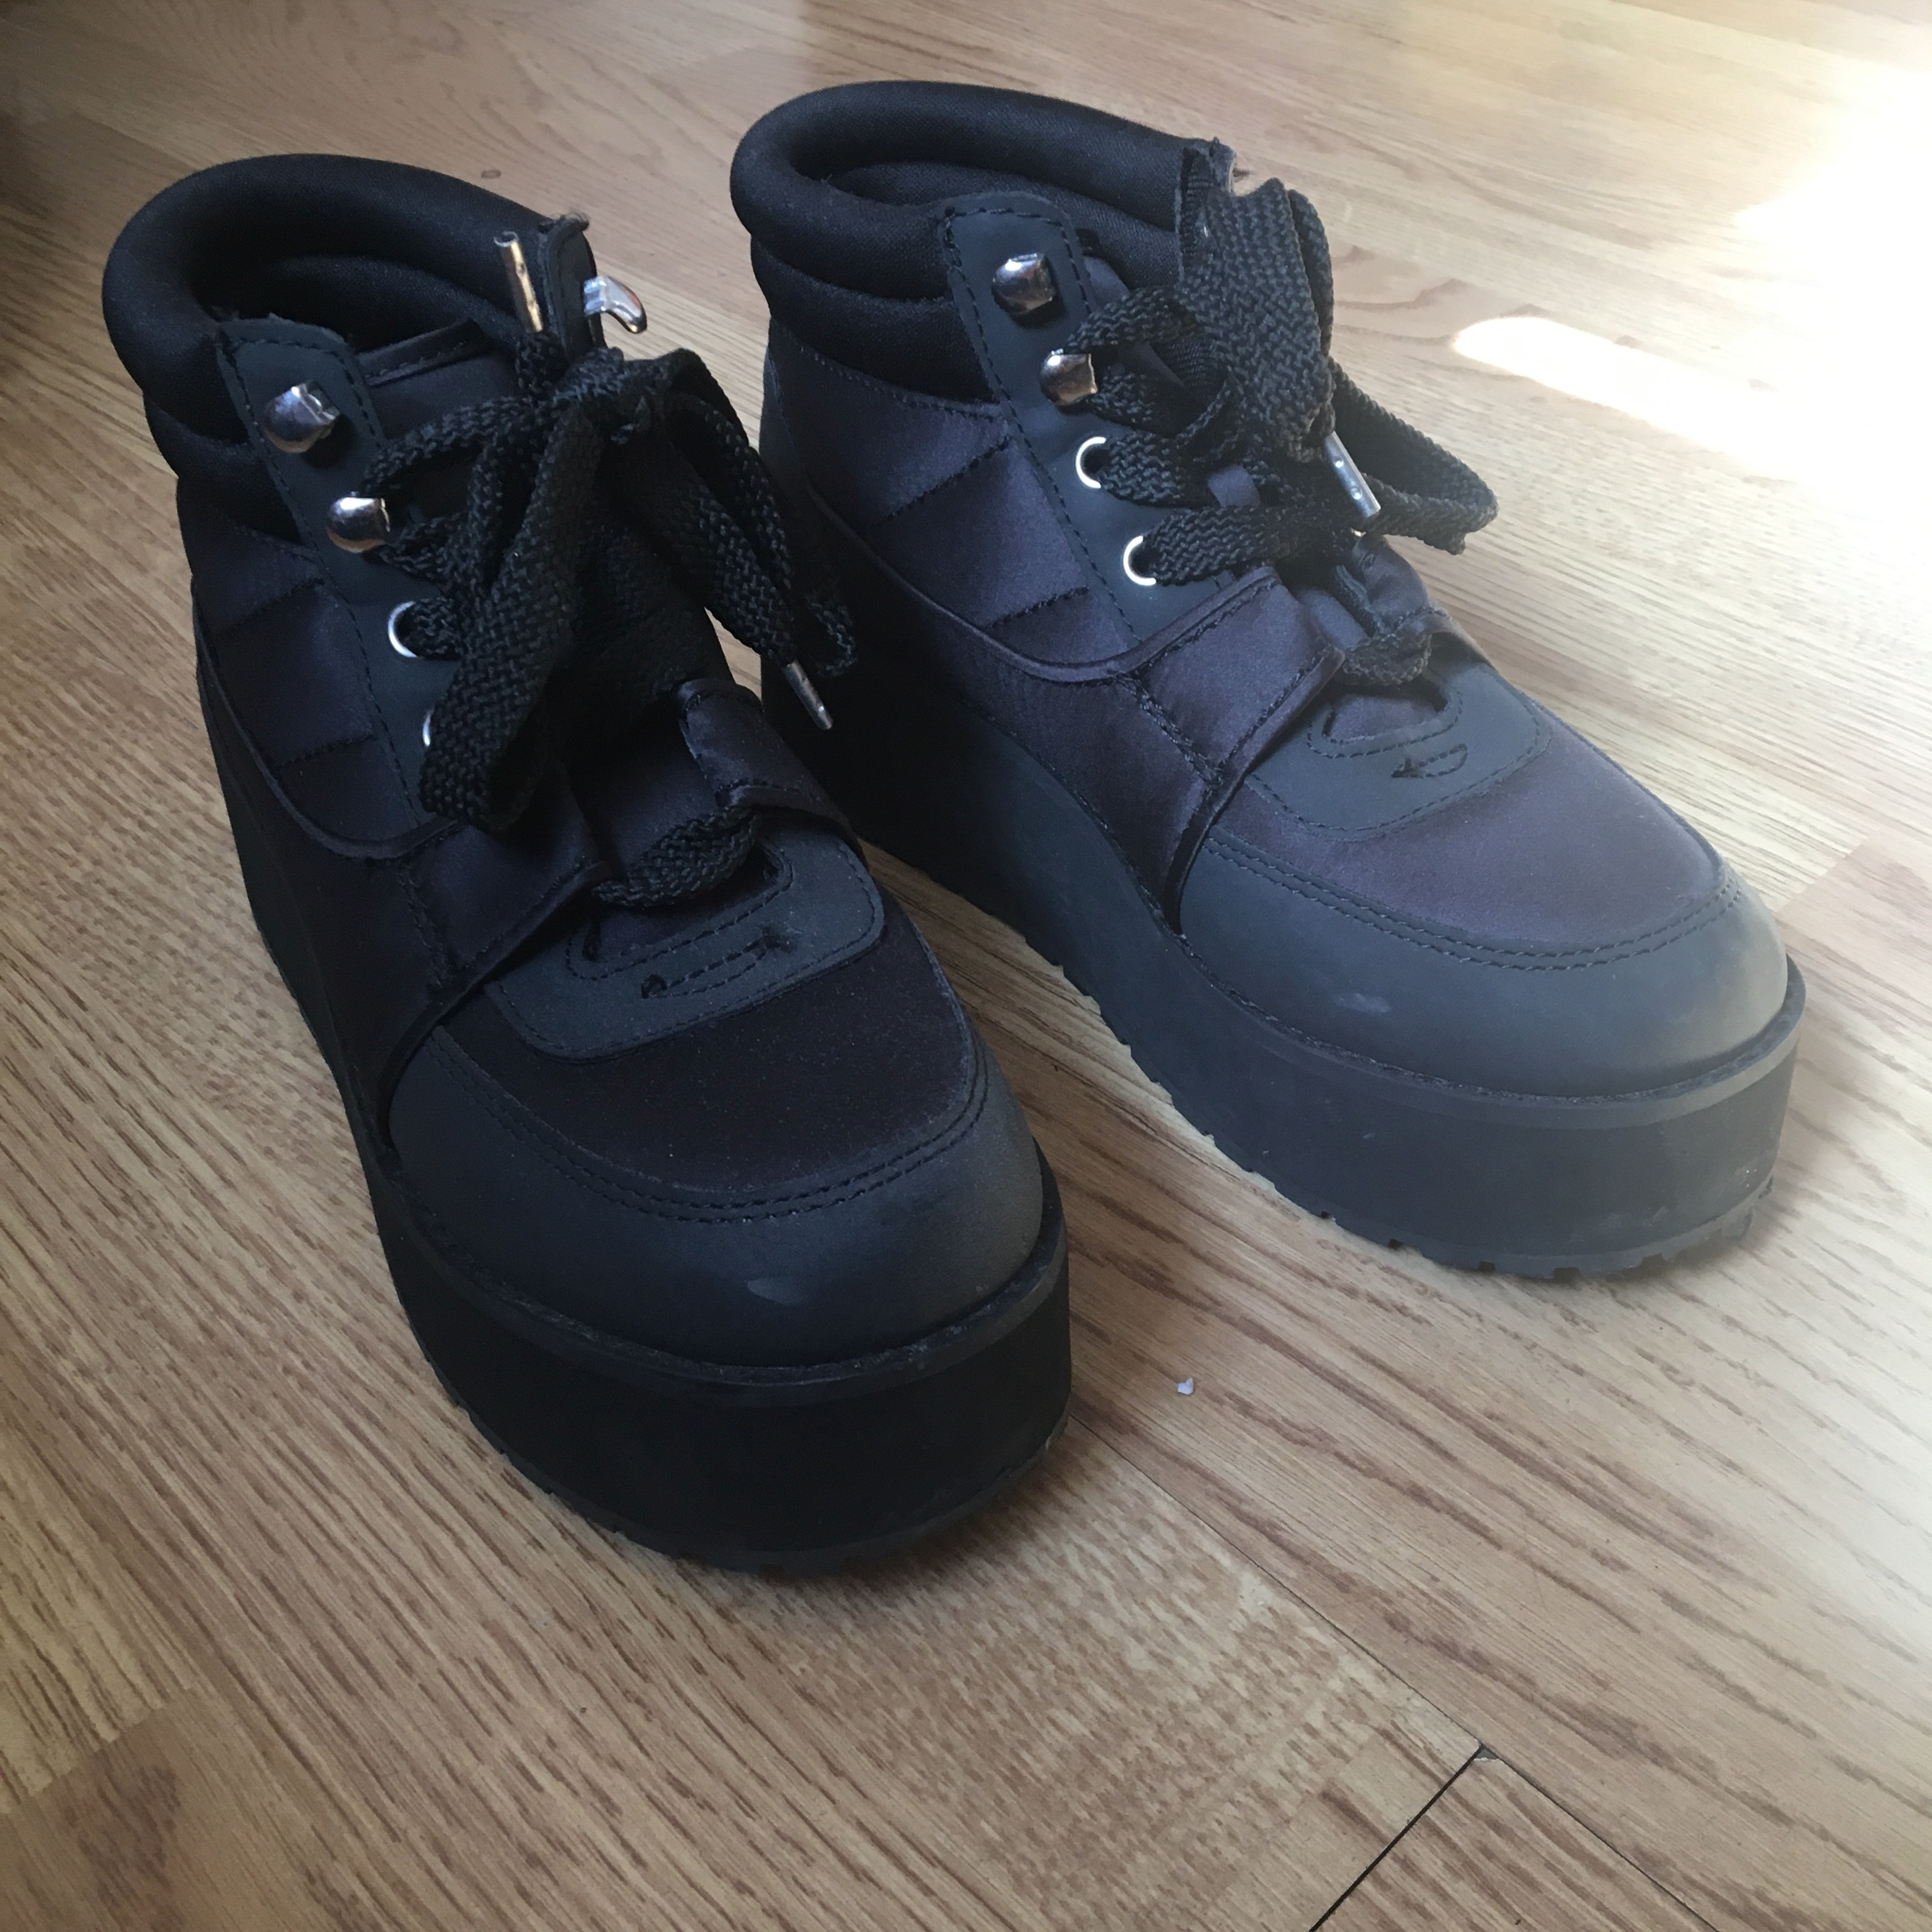 H\u0026M chunky platform trainers size 5 in